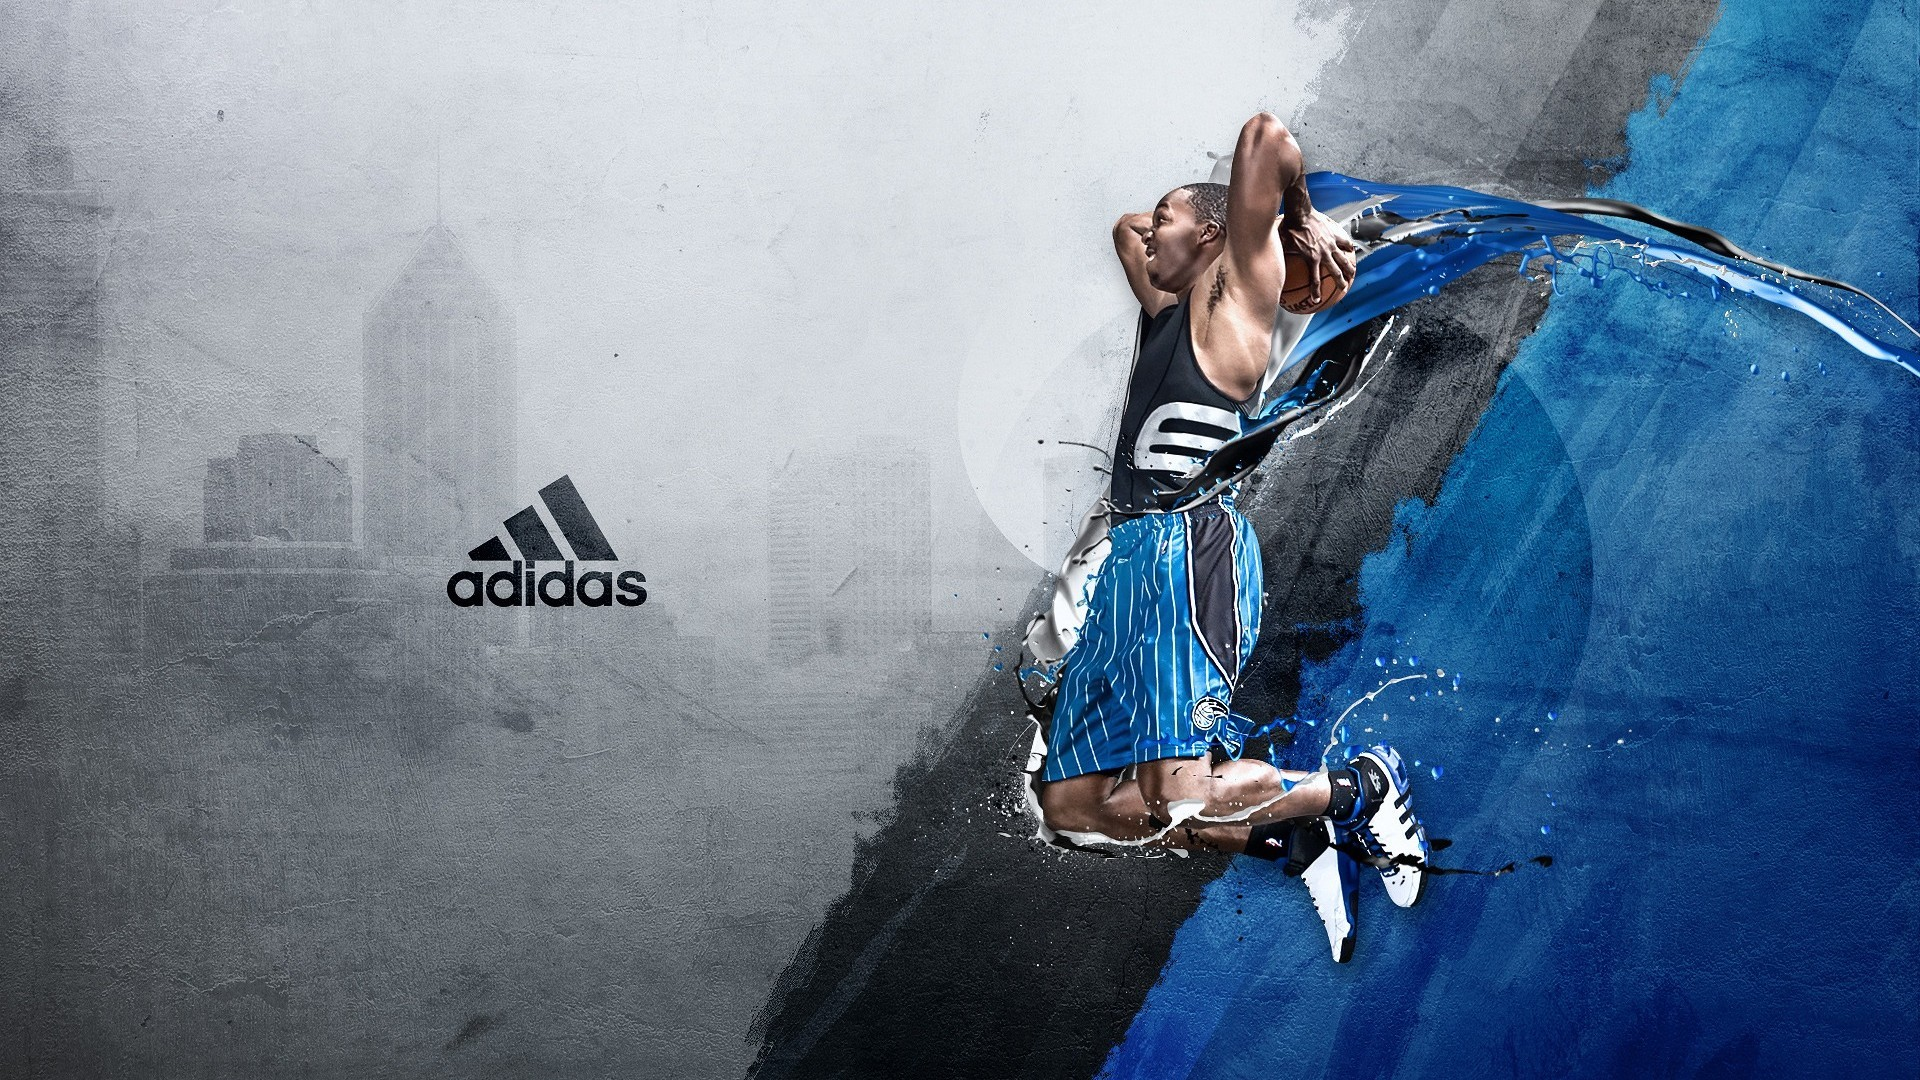 Sports Wallpaper 20339 1920x1080 px HDWallSourcecom